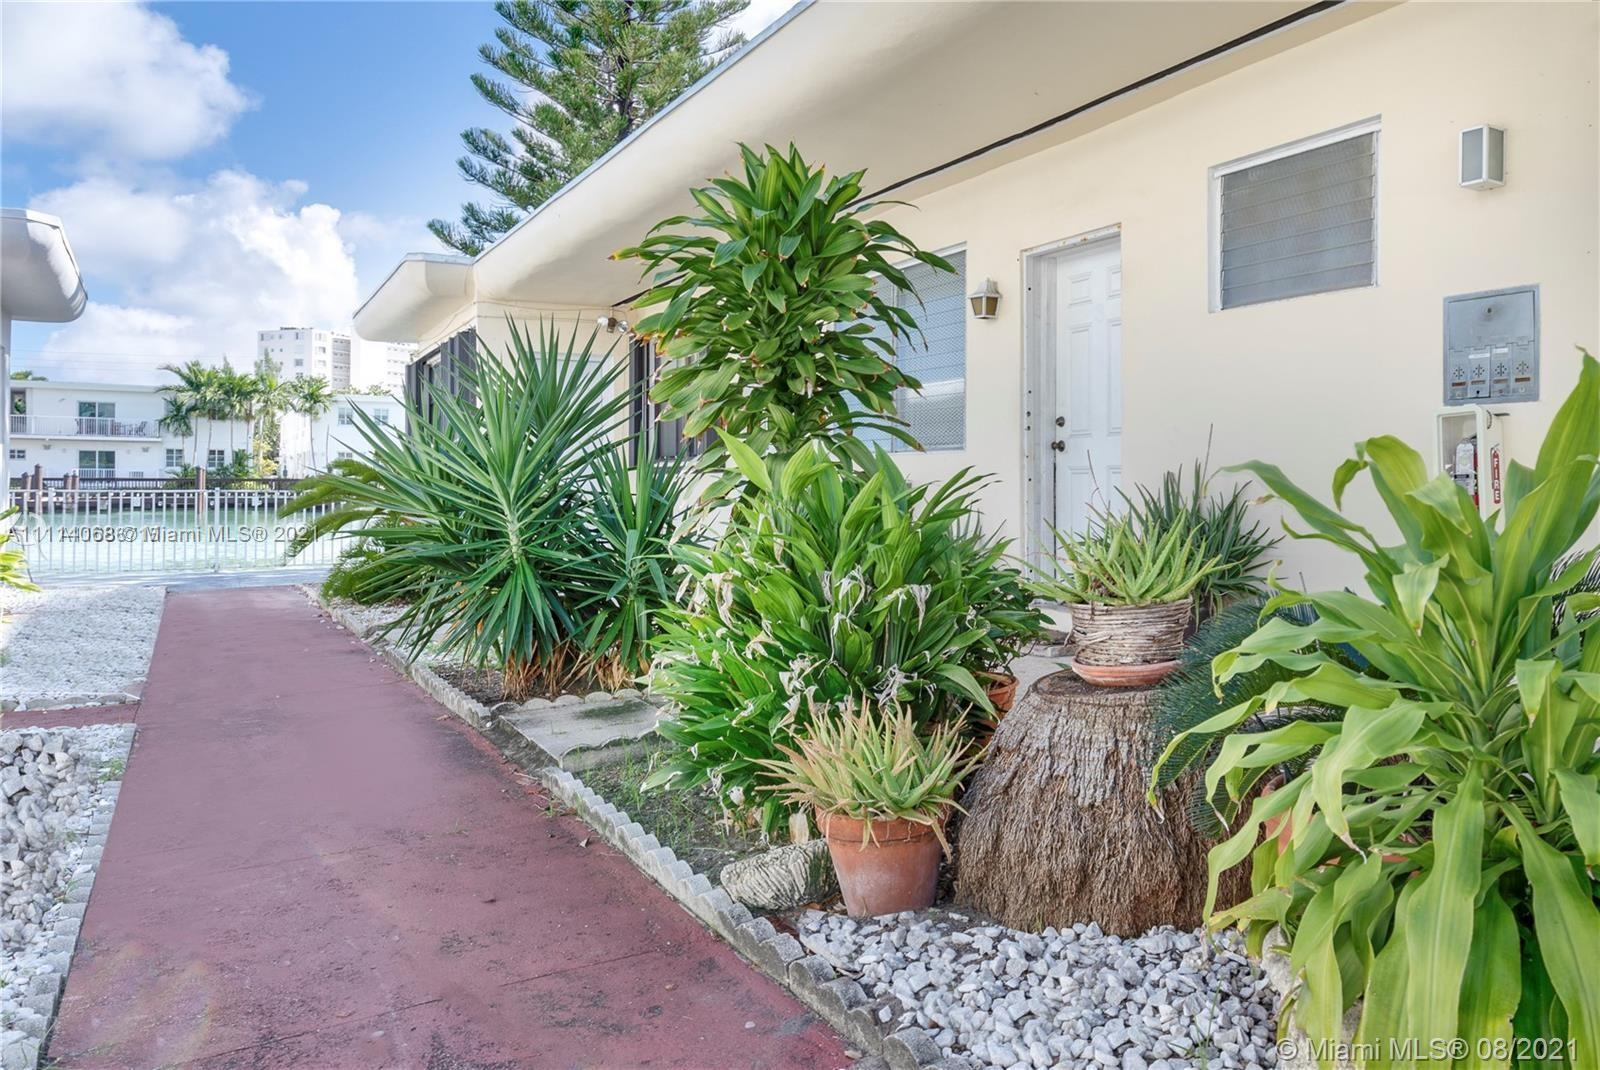 Excellent opportunity to own a condo by the beach without an HOA. Great choice for a first time home